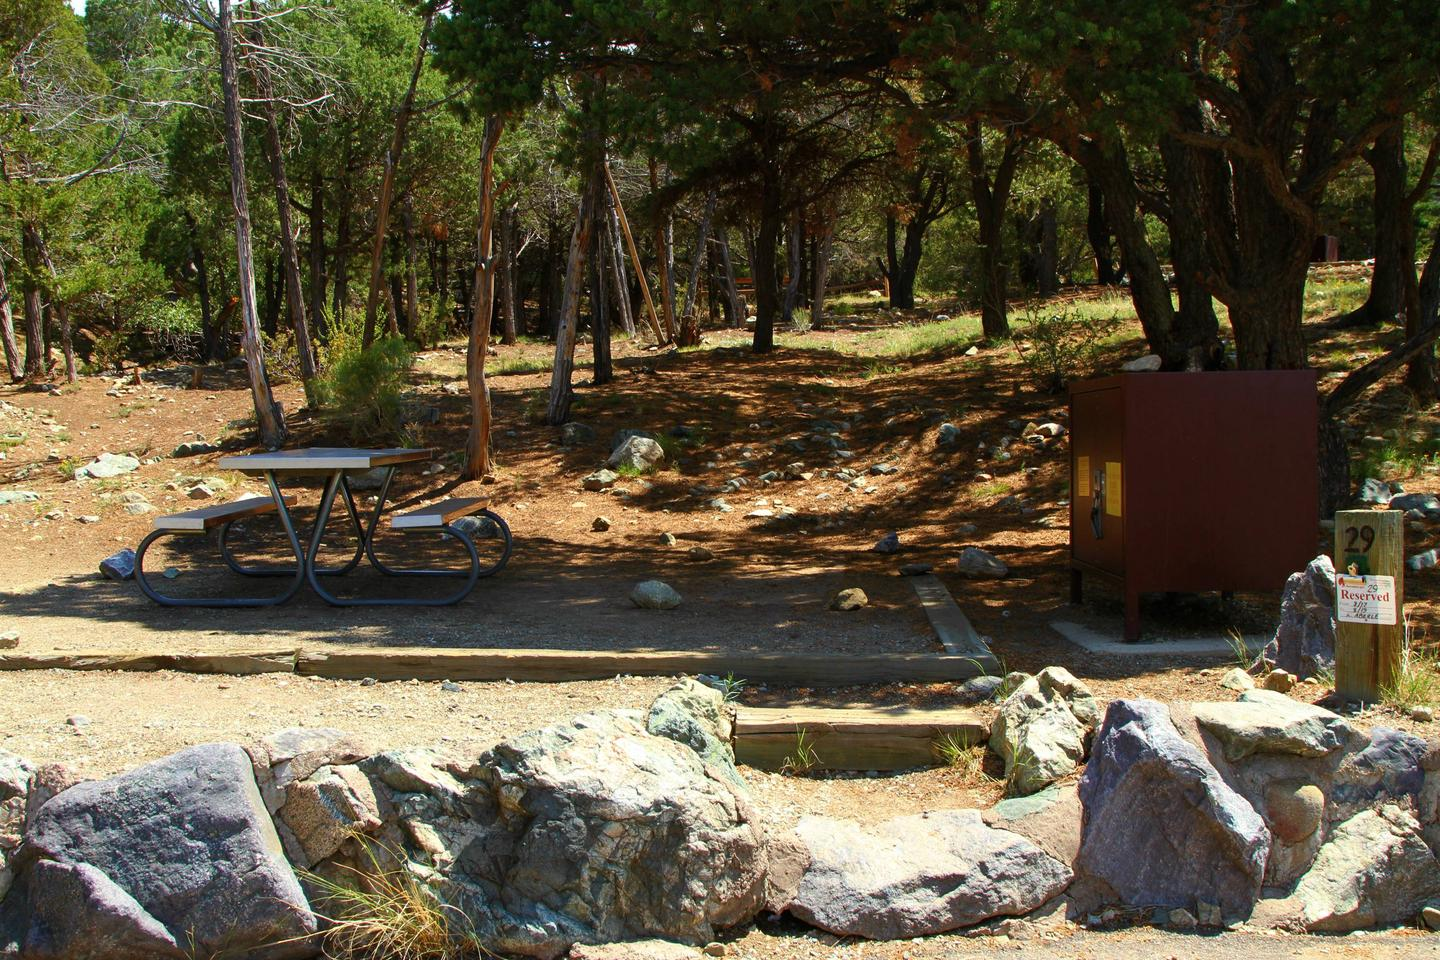 Closeup view of Site #29 stairs, designated tent pad, fire ring, bear box, and picnic table. Pine trees take up the background.Site #29, Pinon Flats Campground